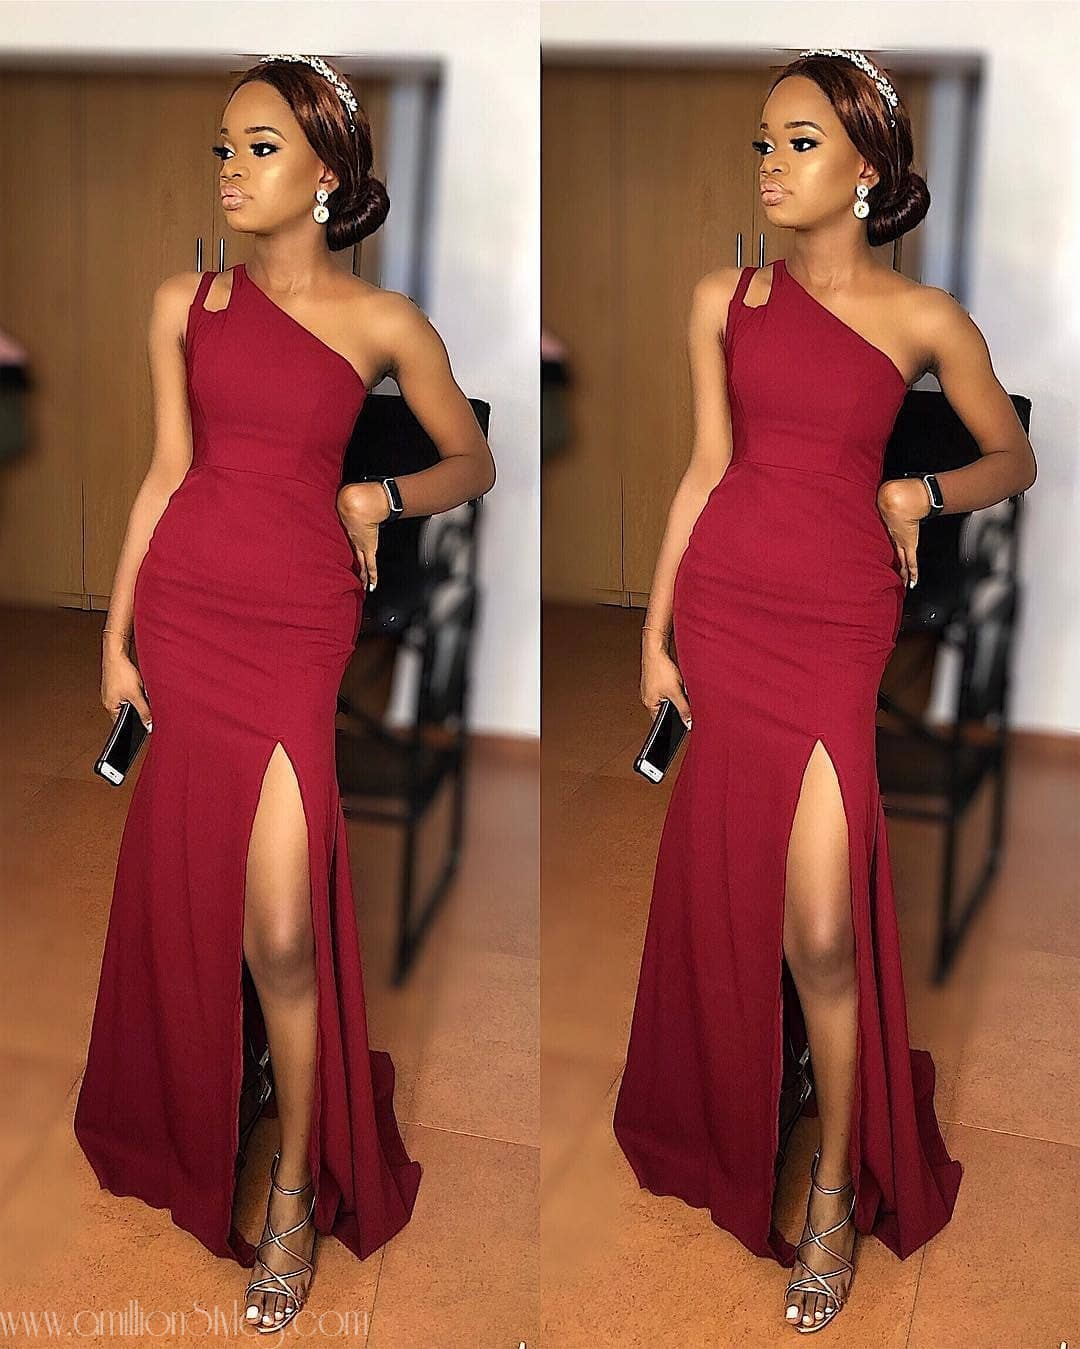 Check Out These Awesome Bridesmaids Styles For Your Girls